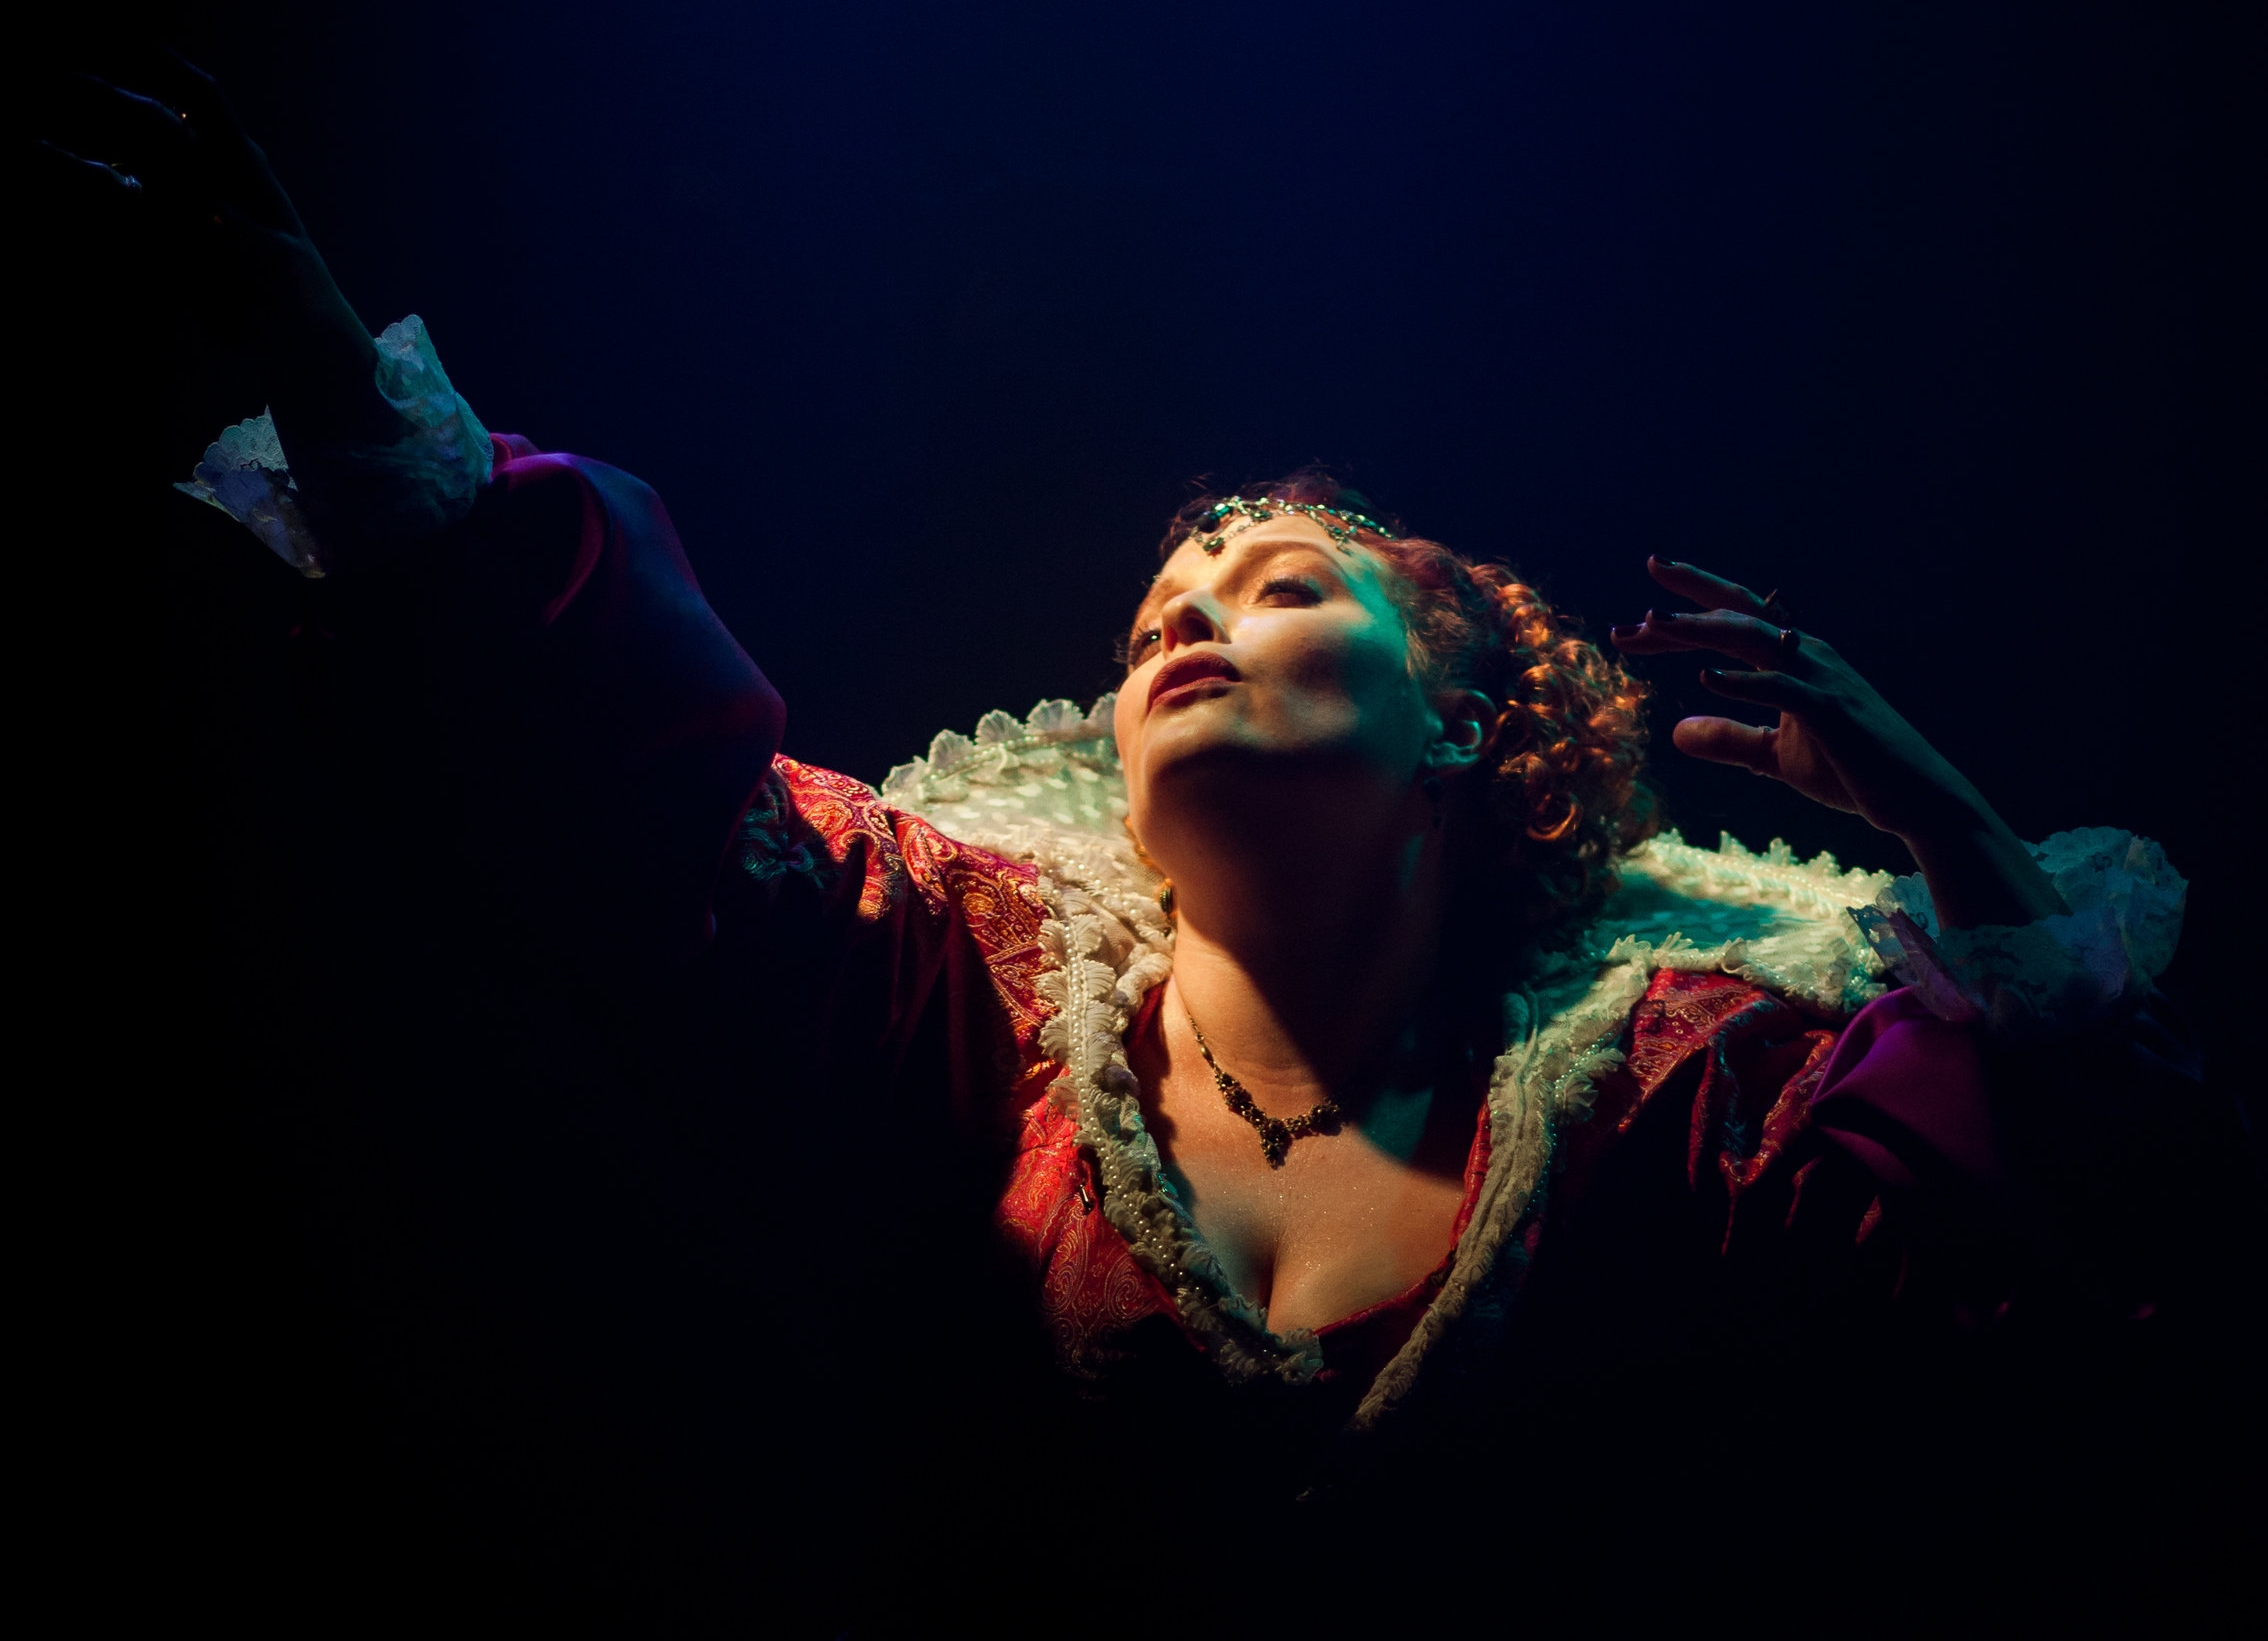 Melissa Vogt as Erzsebet Bathori. Photo by Kimberley Mead.